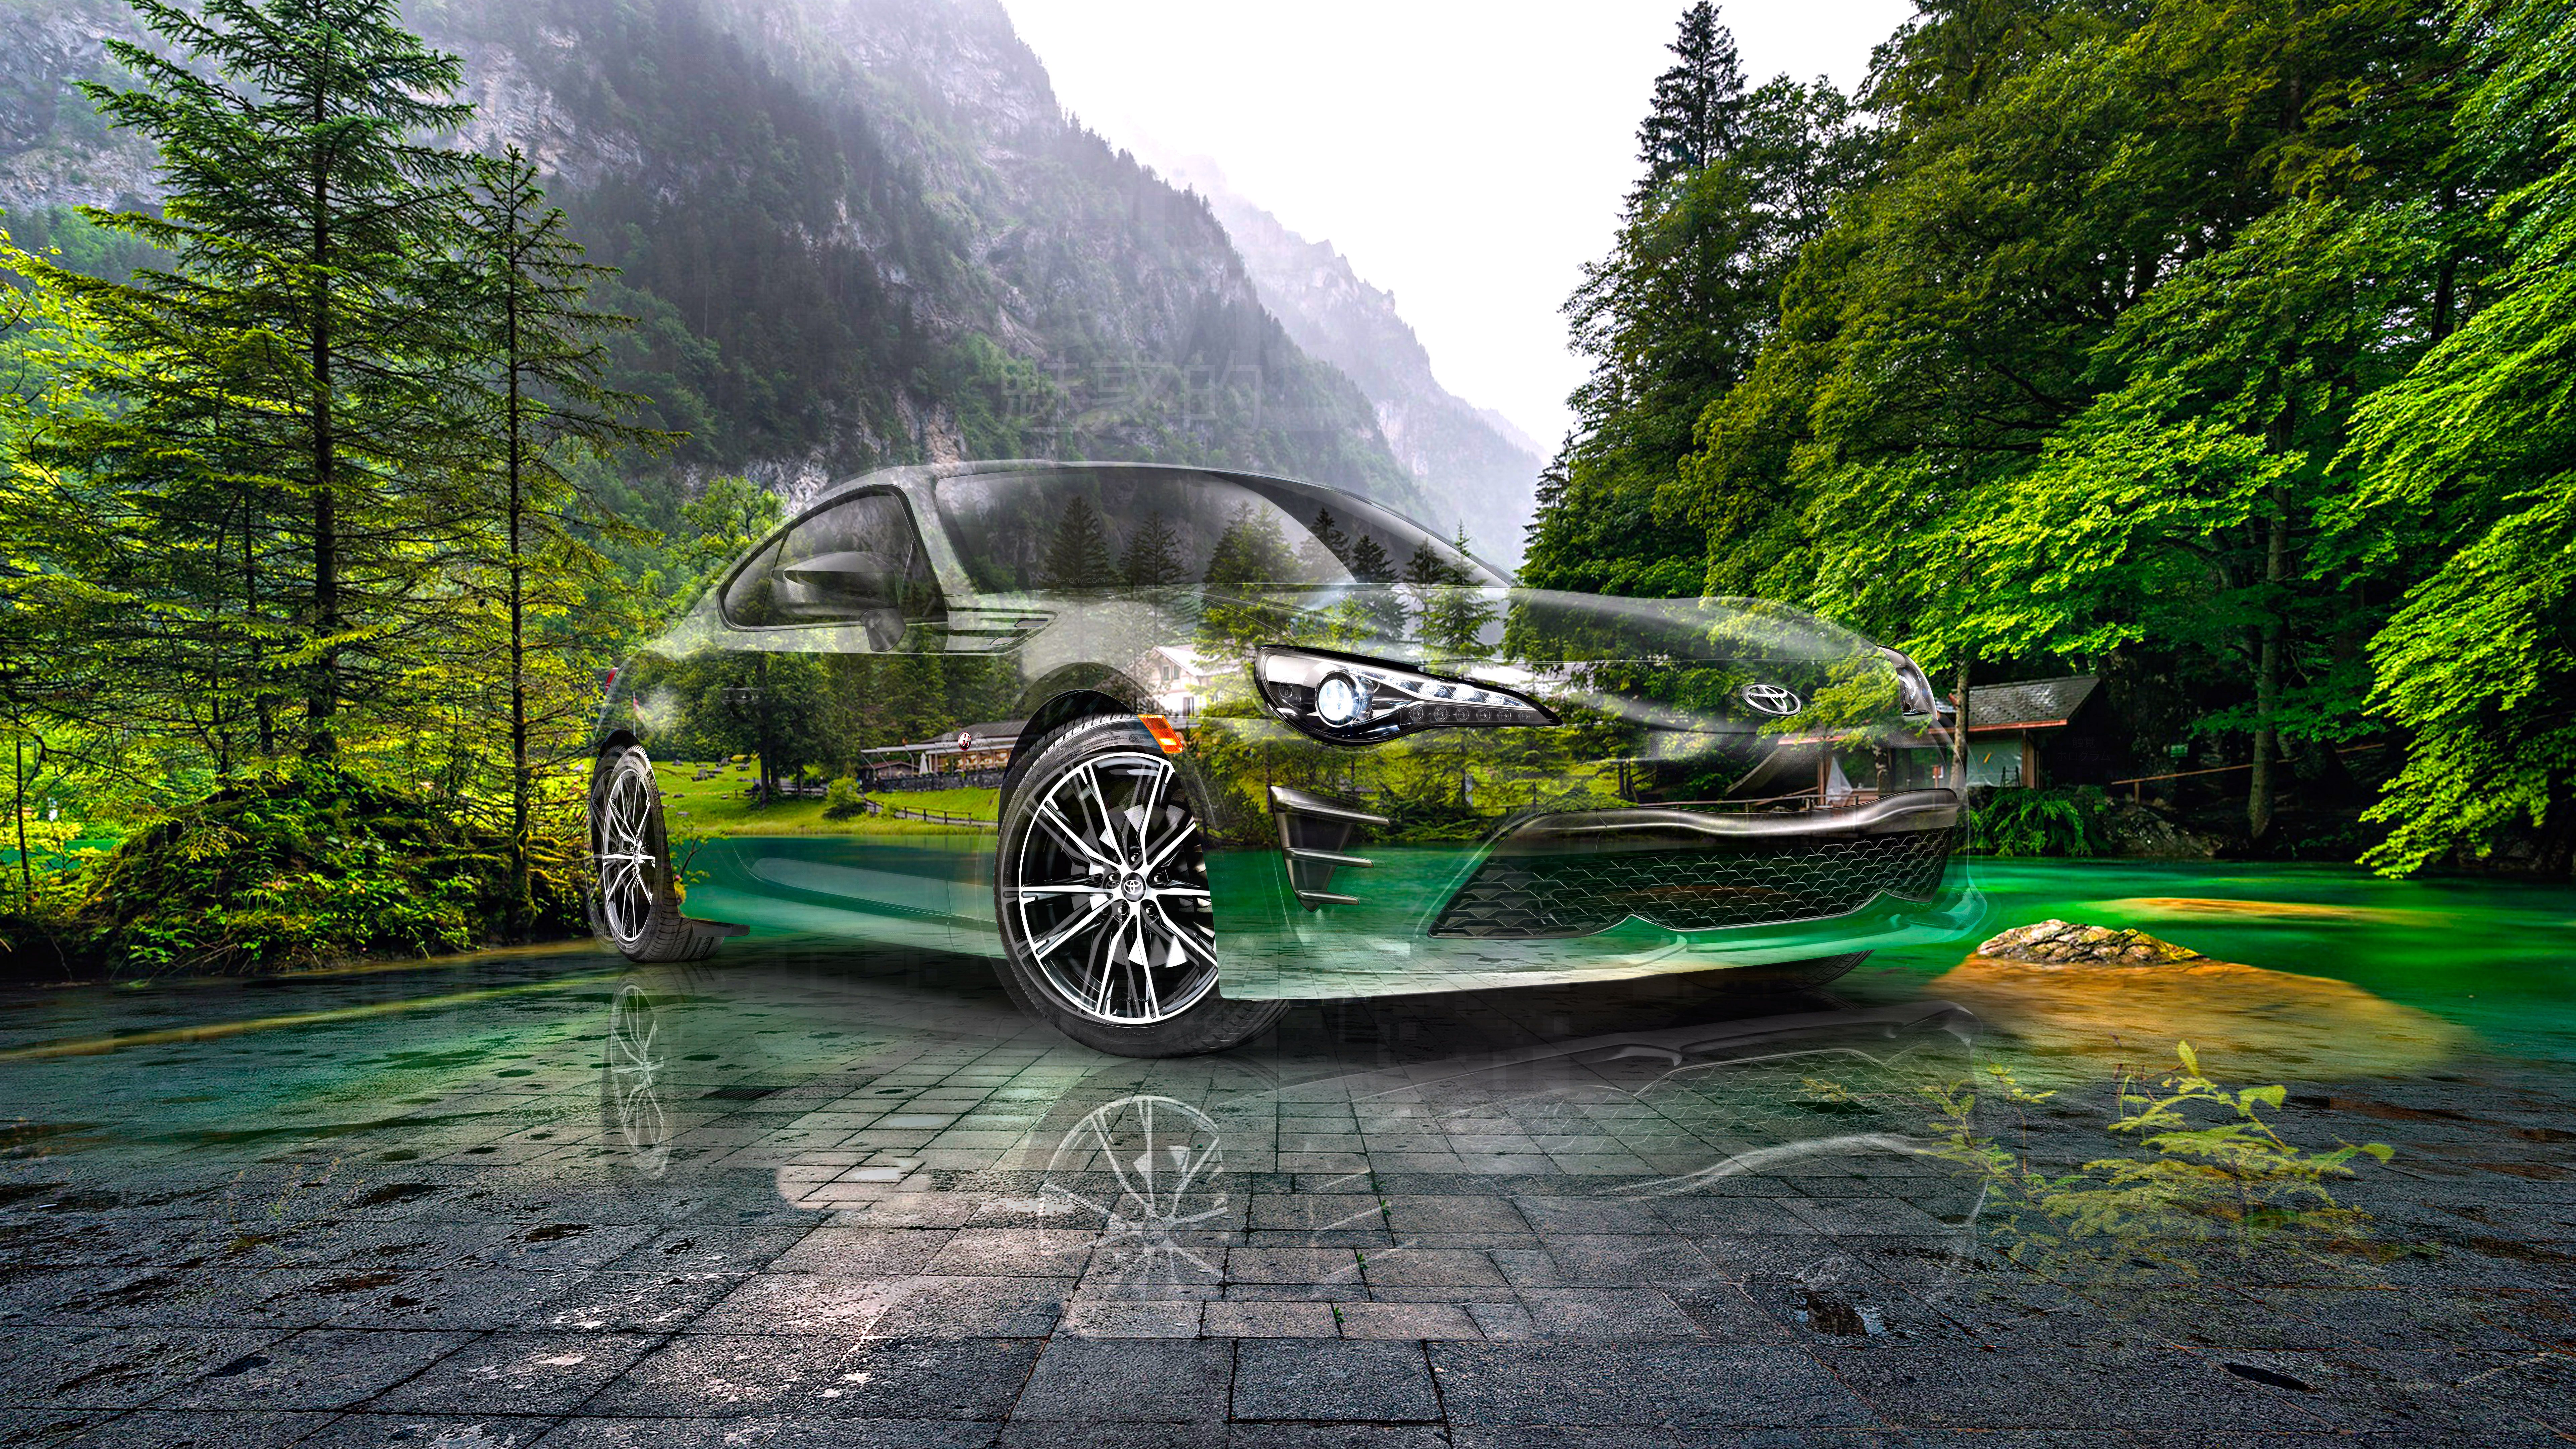 Toyota-GT86-JDM-Super-Crystal-Seductive-Soul-Nature-Forest-Mountains-Tactile-Hologram-Art-Car-2021-Multicolors-8K-Wallpapers-by-Tony-Kokhan-www.el-tony.com-image